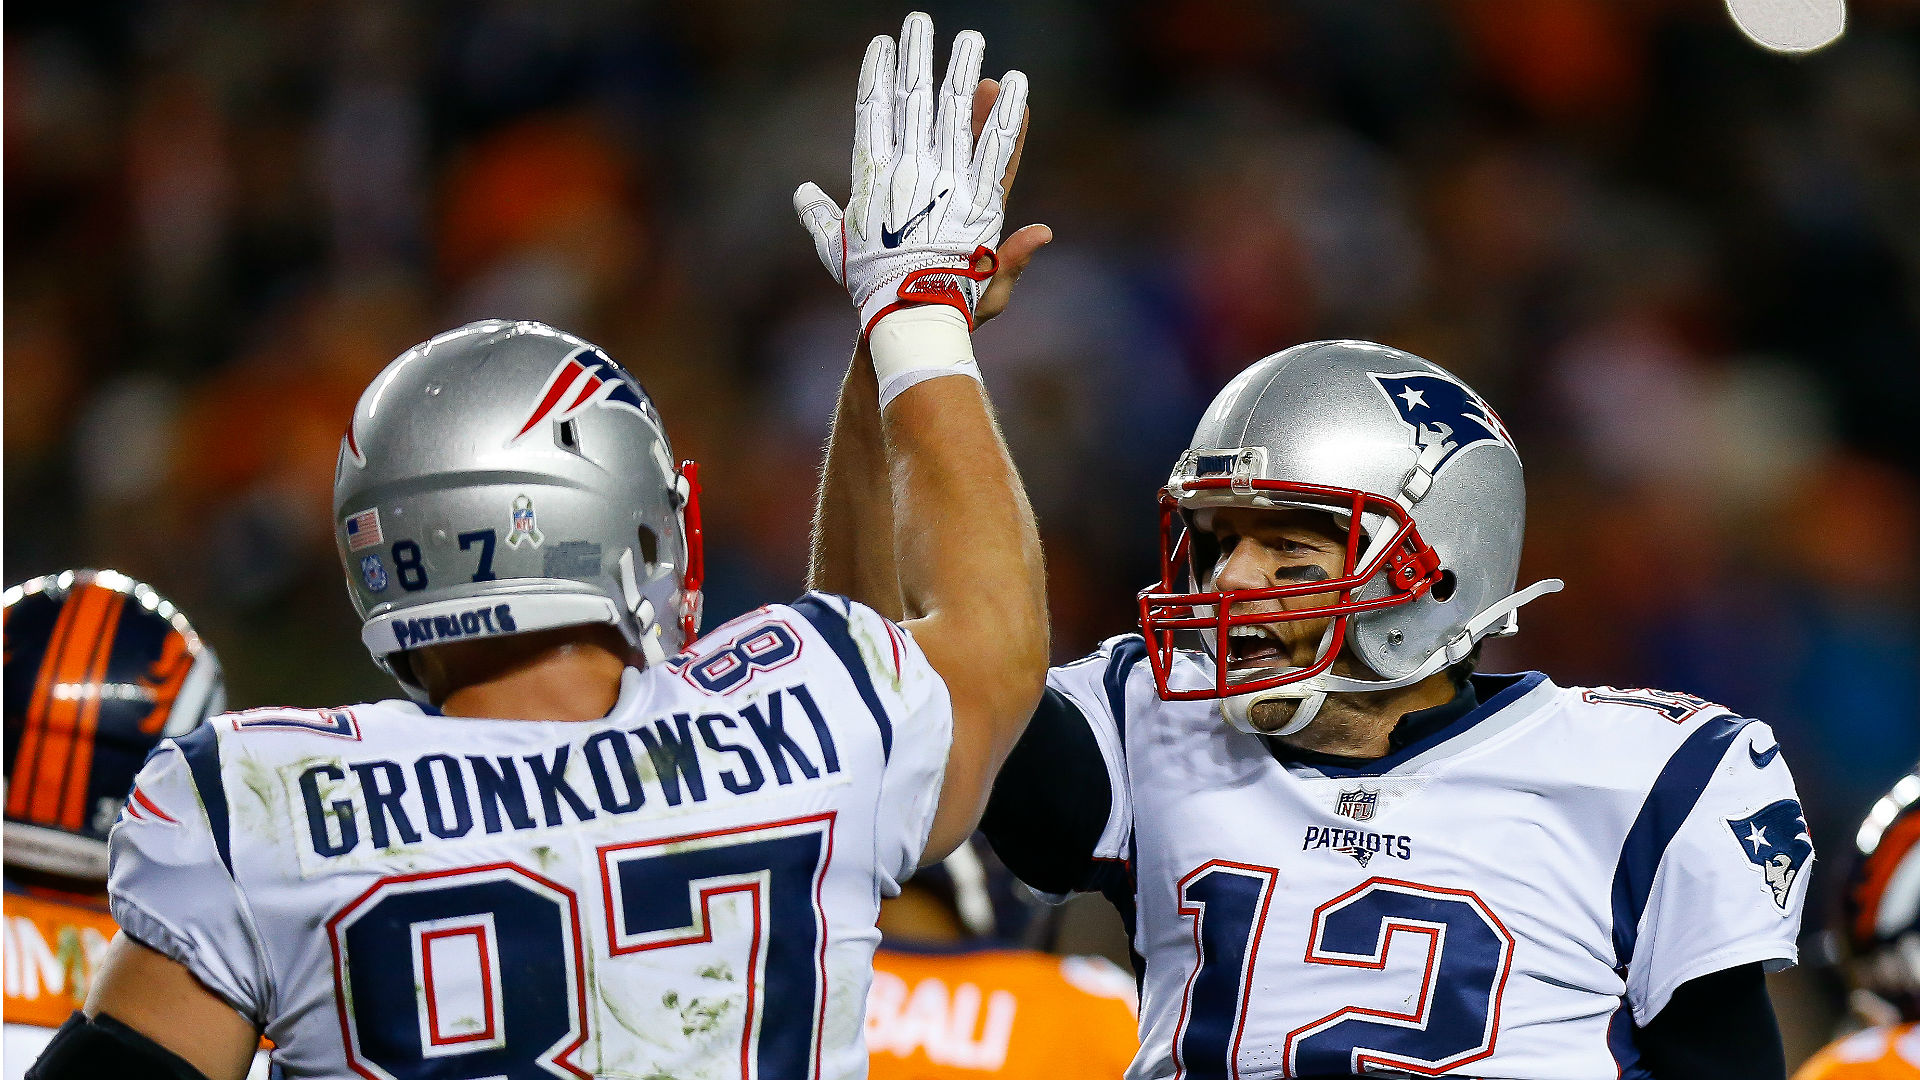 Patriots vs. Broncos: Score, results, highlights from Sunday night game in Denver